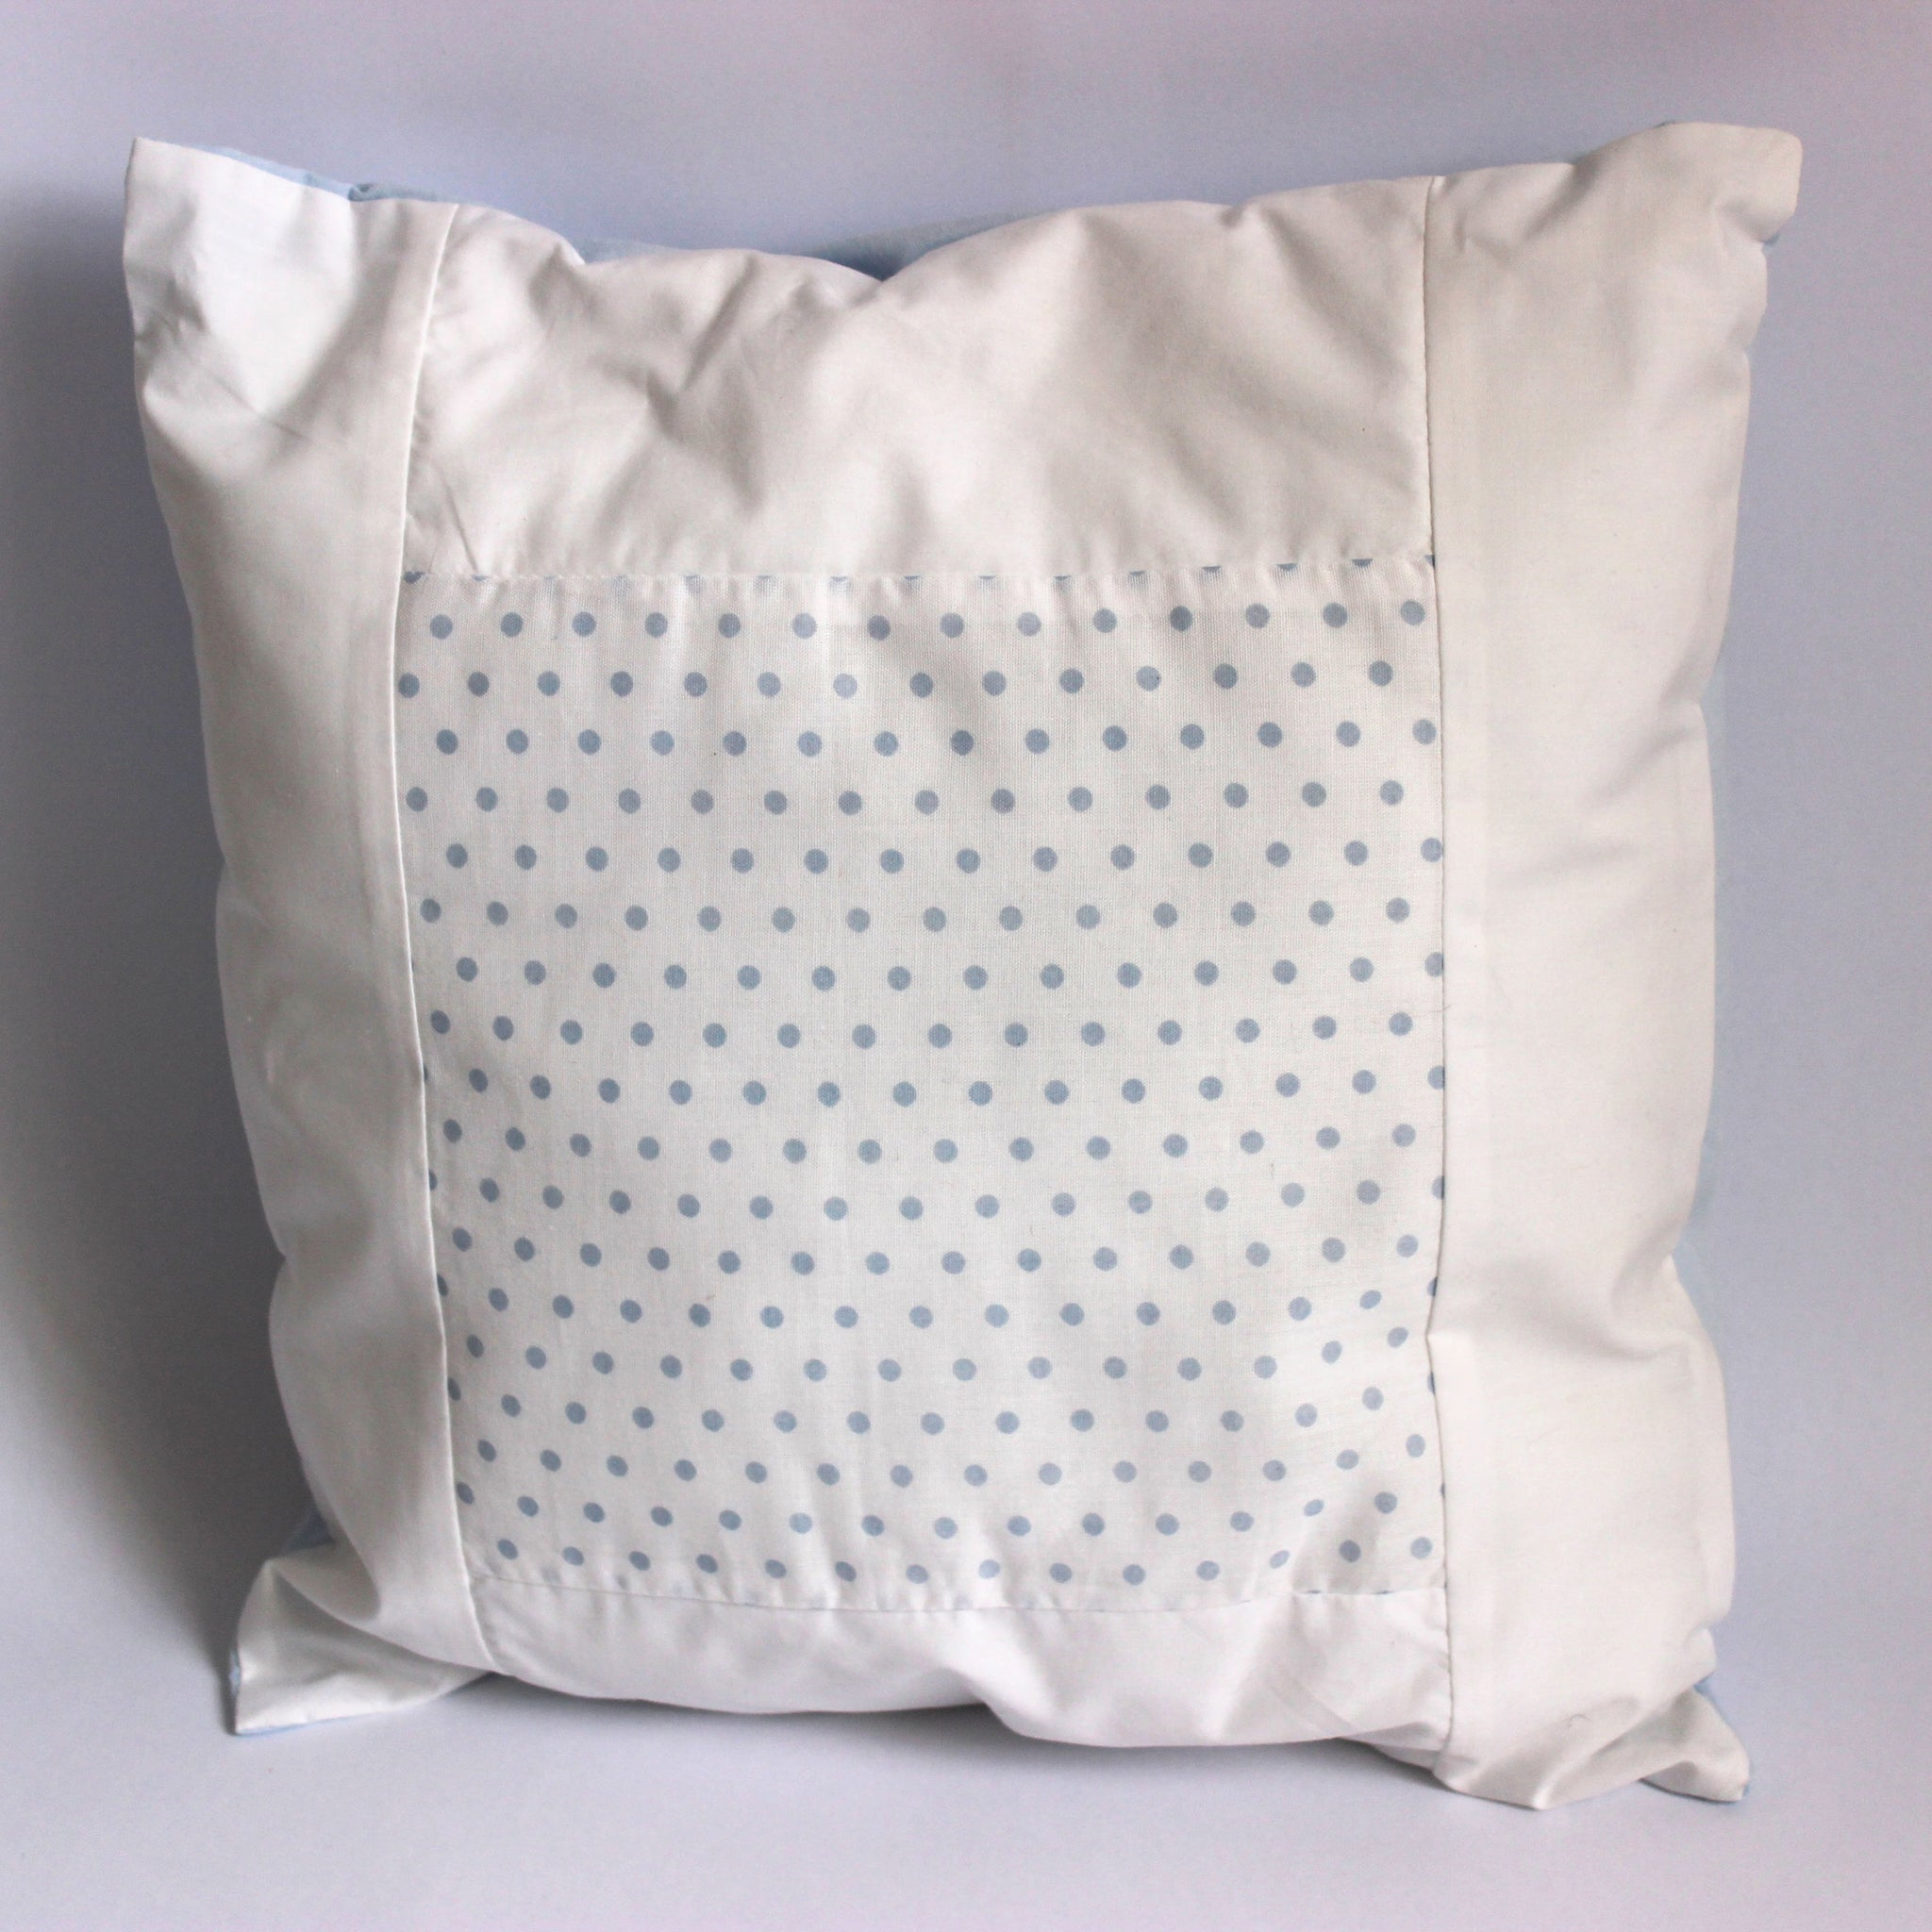 Baby Spots Cushion - Blue on White